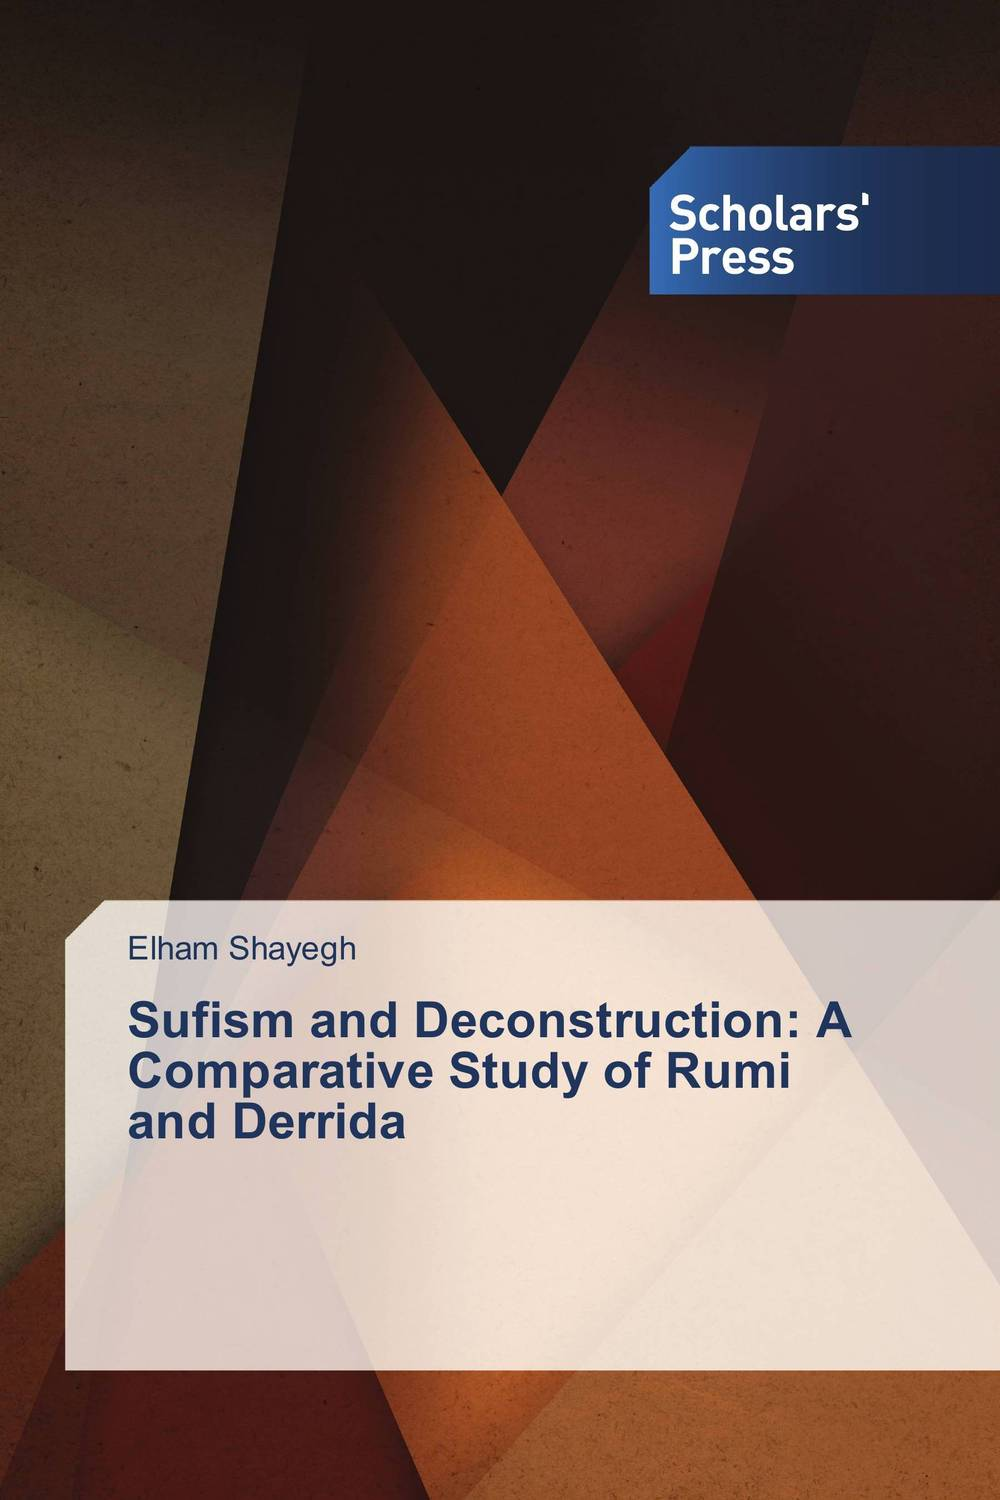 Sufism and Deconstruction: A Comparative Study of Rumi and Derrida a study of the religio political thought of abdurrahman wahid